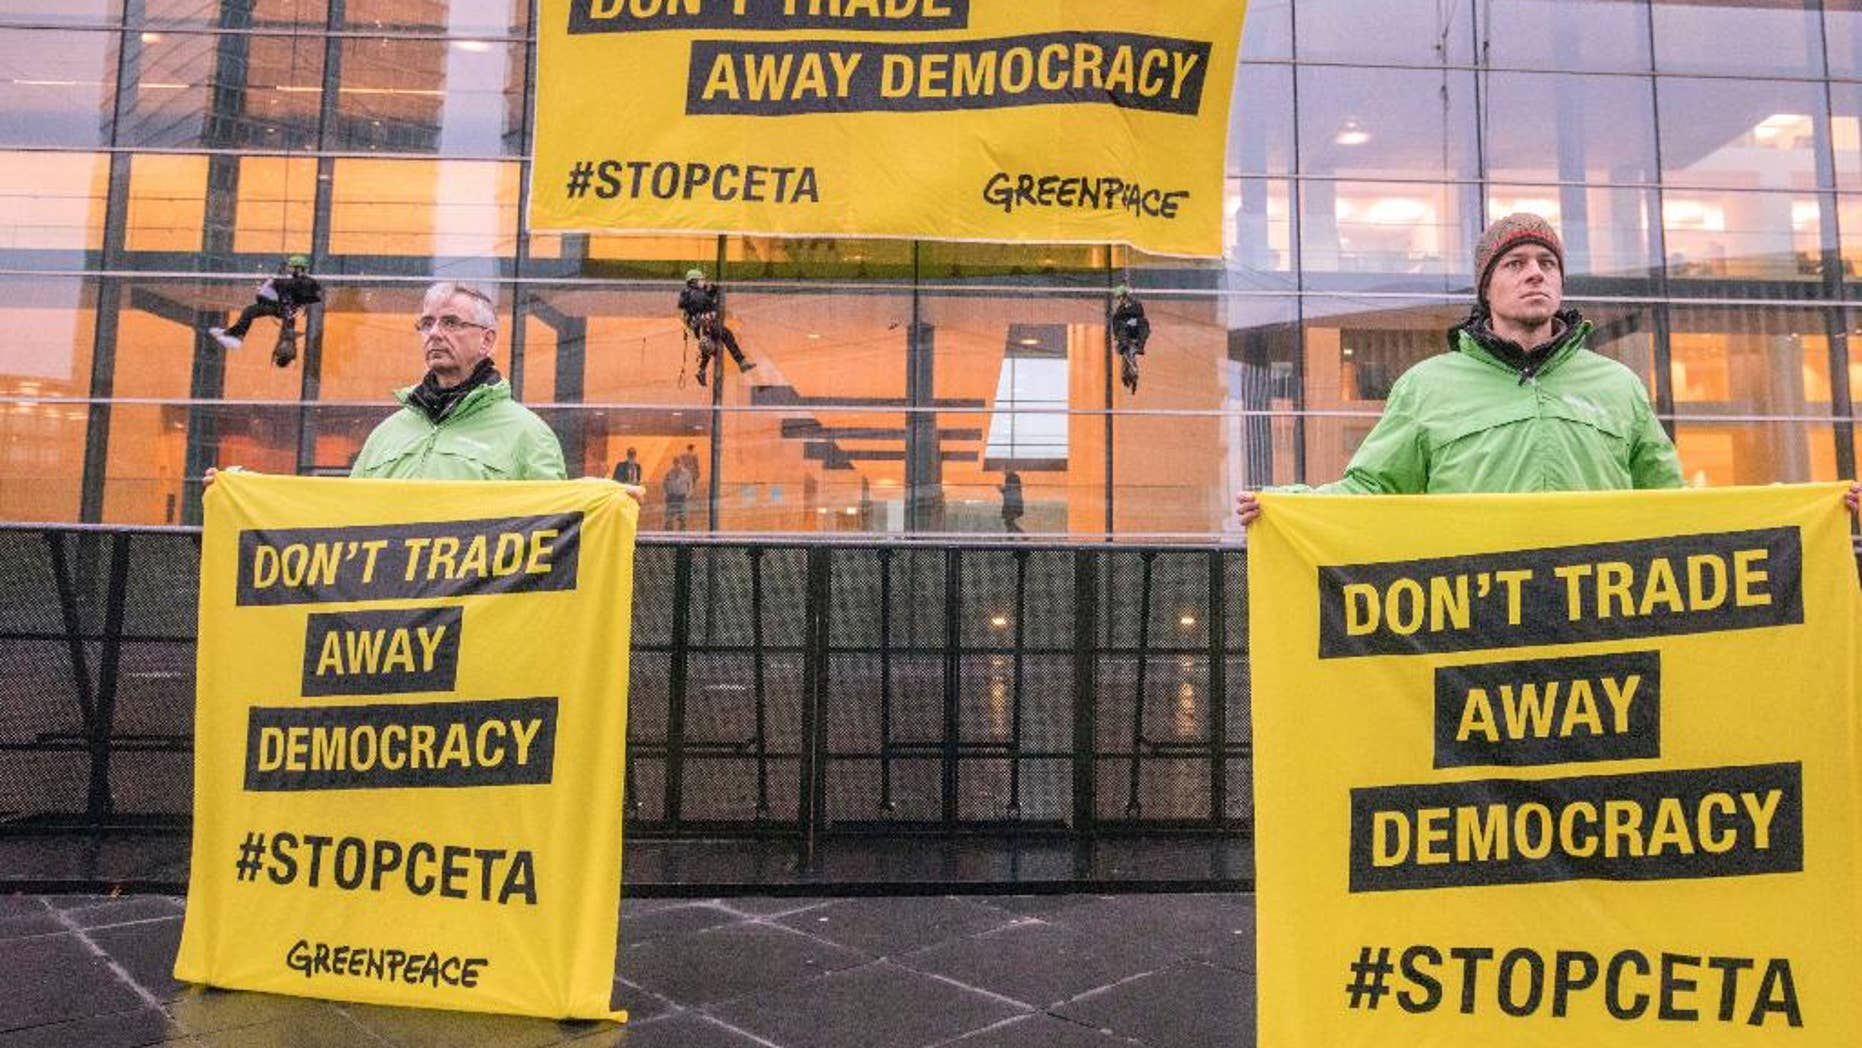 Greenpeace demonstrators hold protest banner outside a meeting venue of EU trade ministers at the EU Council building in Luxembourg, Tuesday, Oct. 18, 2016. European Union trade ministers meet Tuesday to discuss the Comprehensive Economic and Trade Agreement between the EU and Canada. (AP Photo/Olivier Matthys)